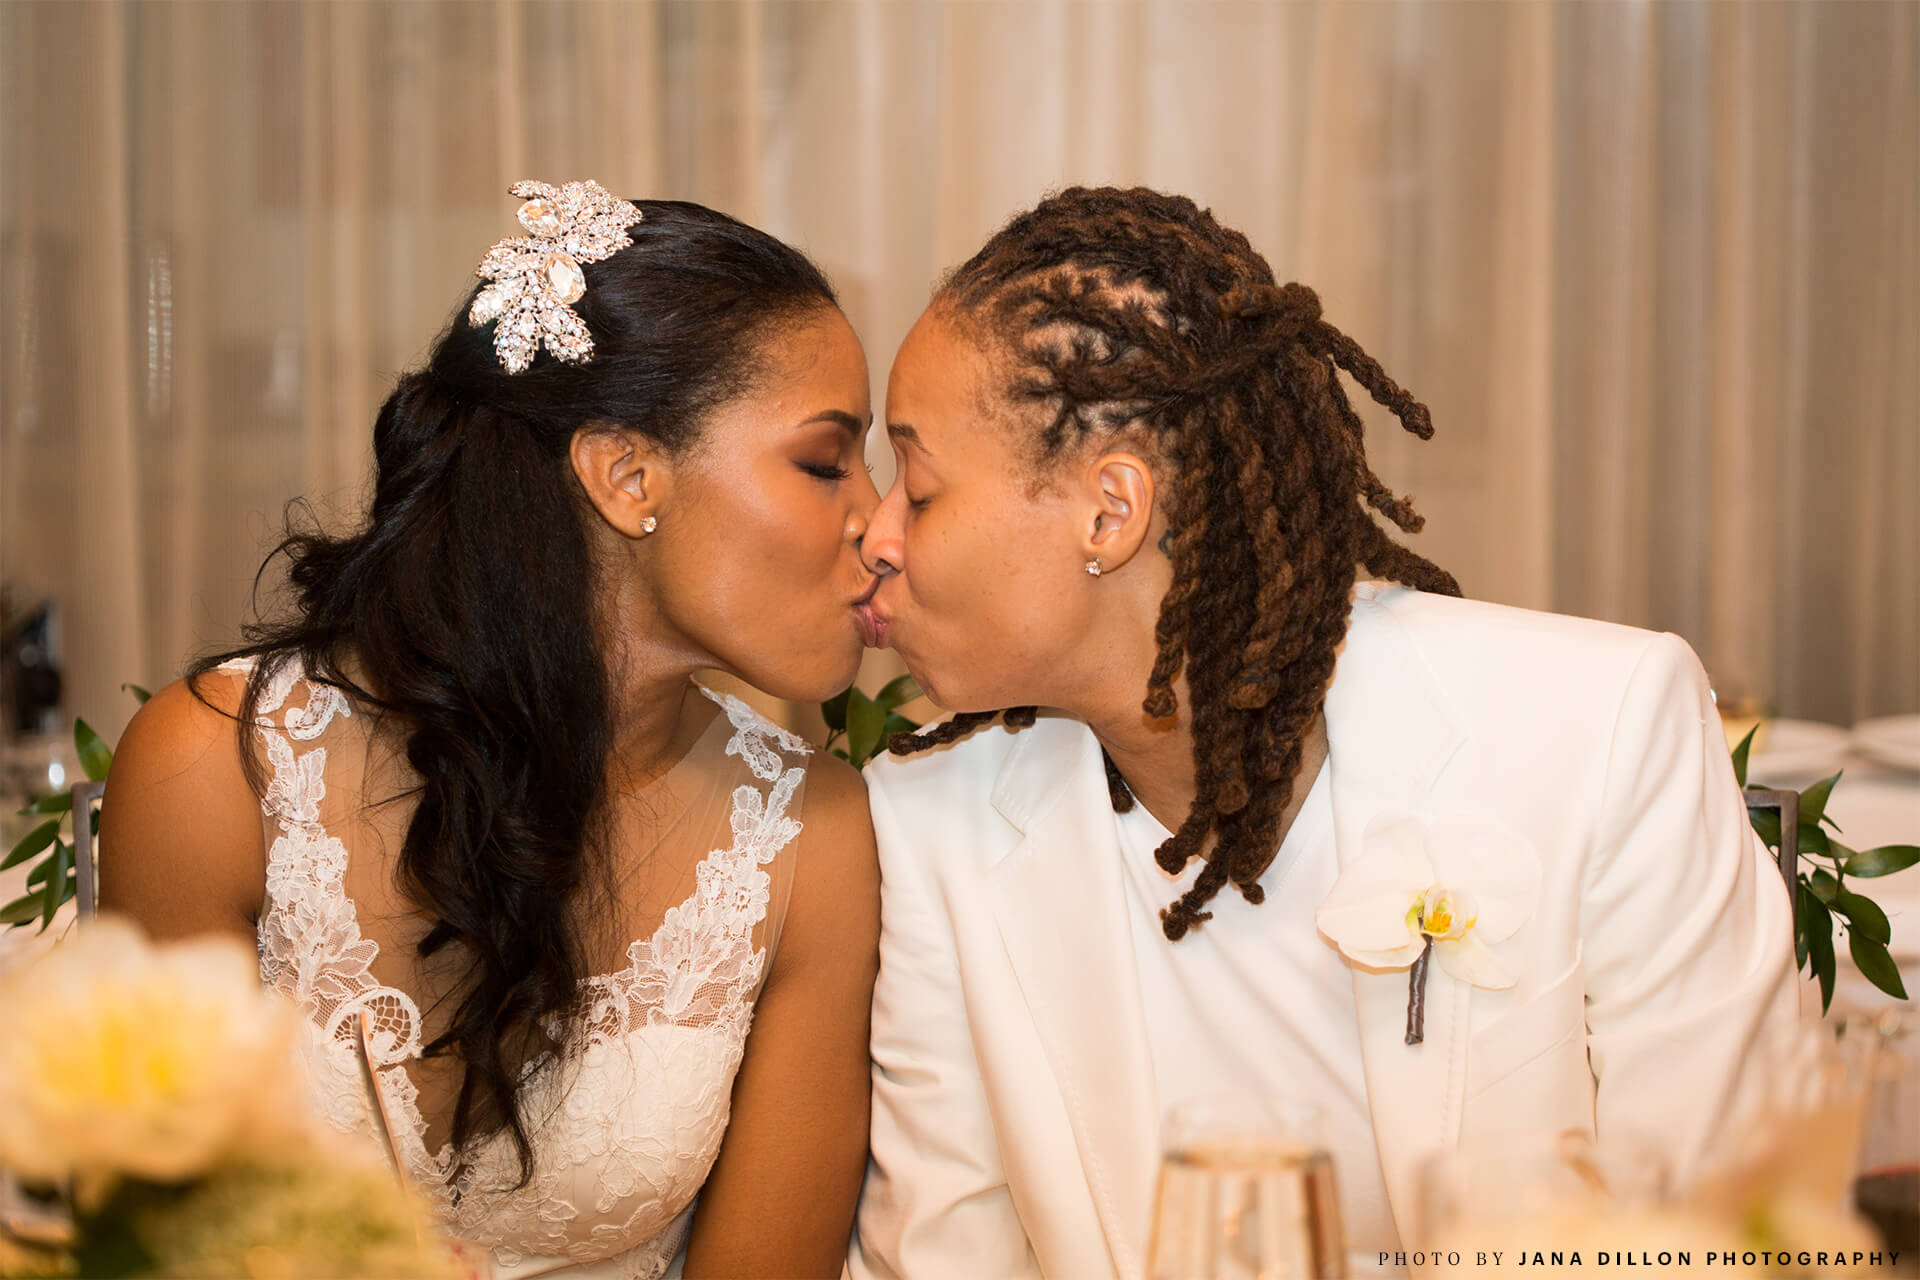 Is seimone augustus married